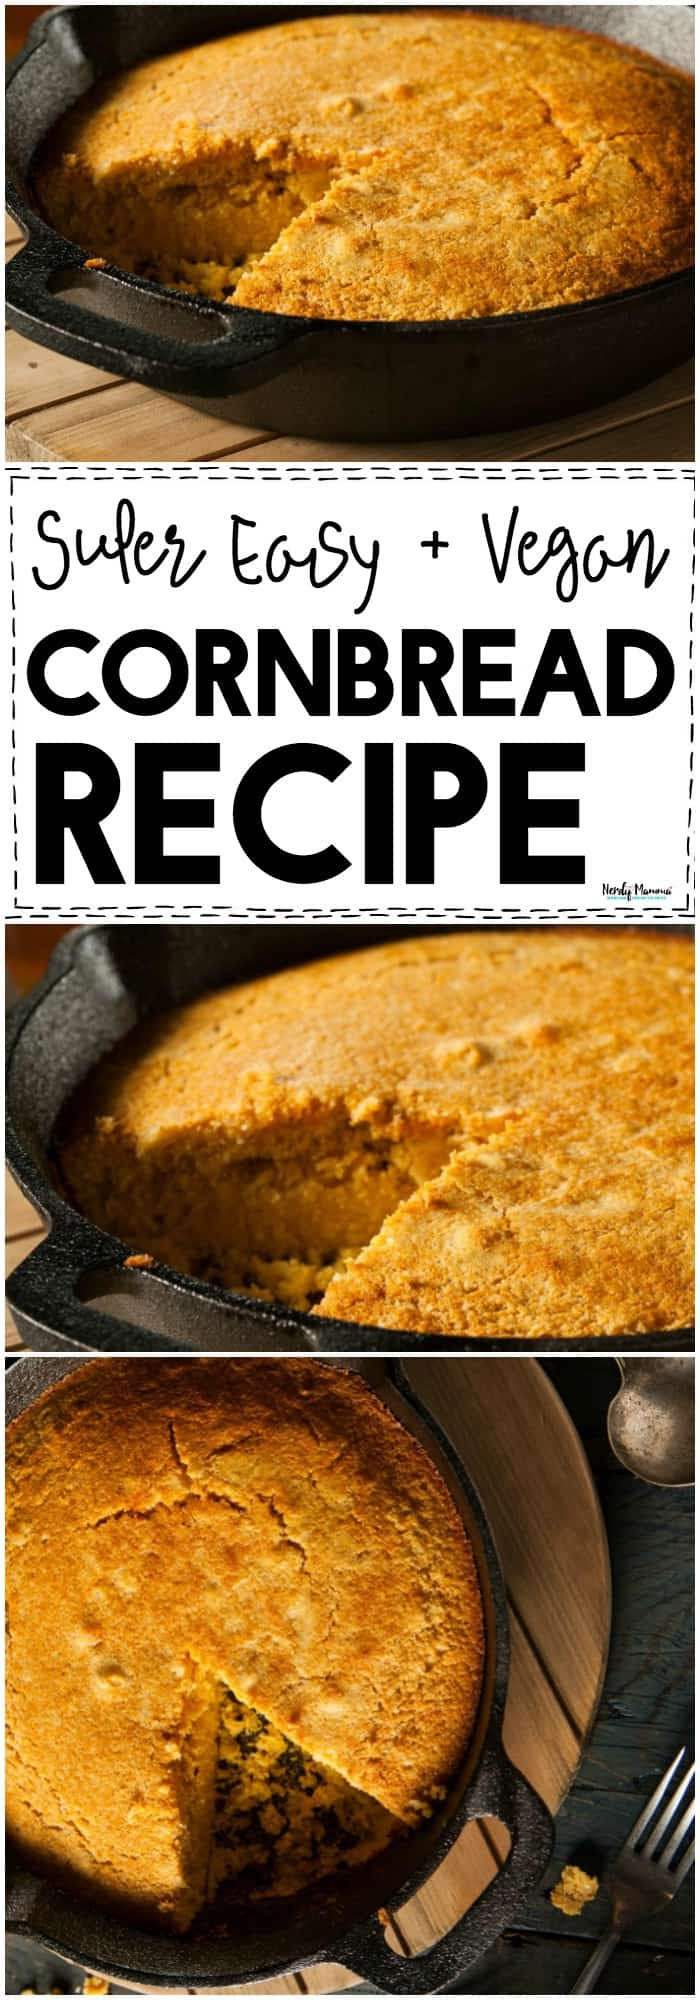 This vegan cornbread recipe is so easy. Its a soft, fluffy bread with just the right amount of yummy...LOVE!